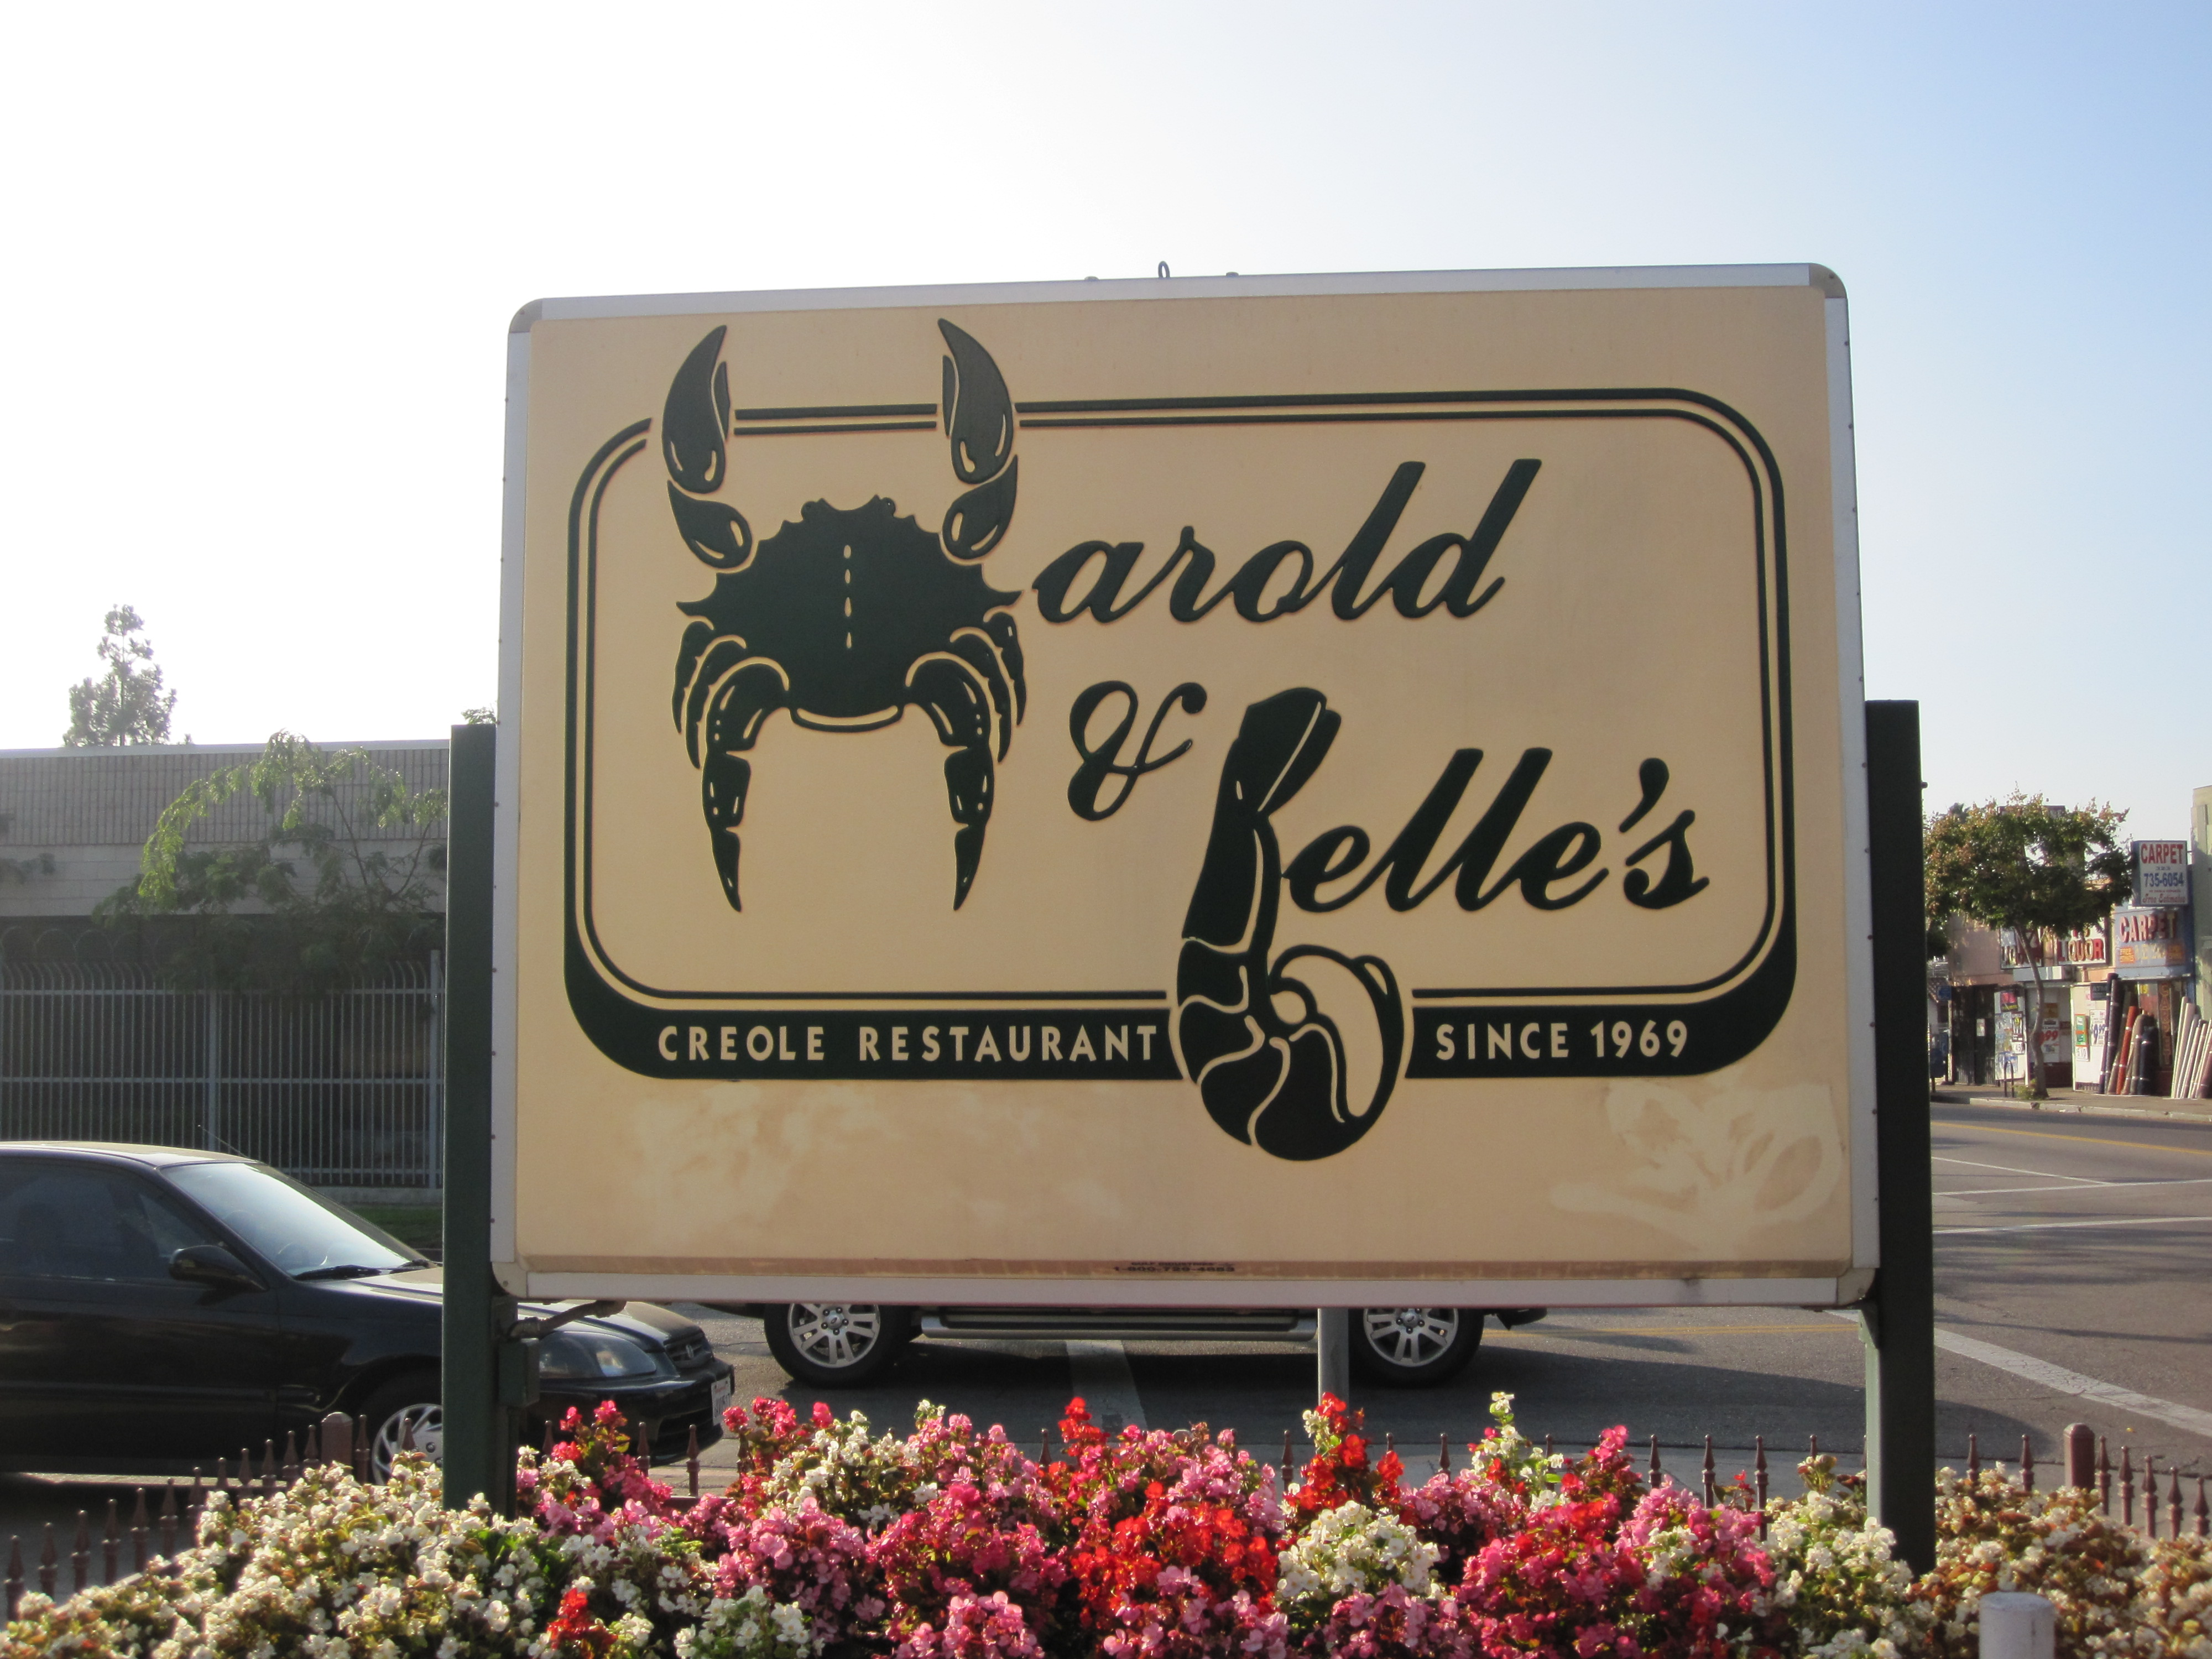 Harold and Belle's